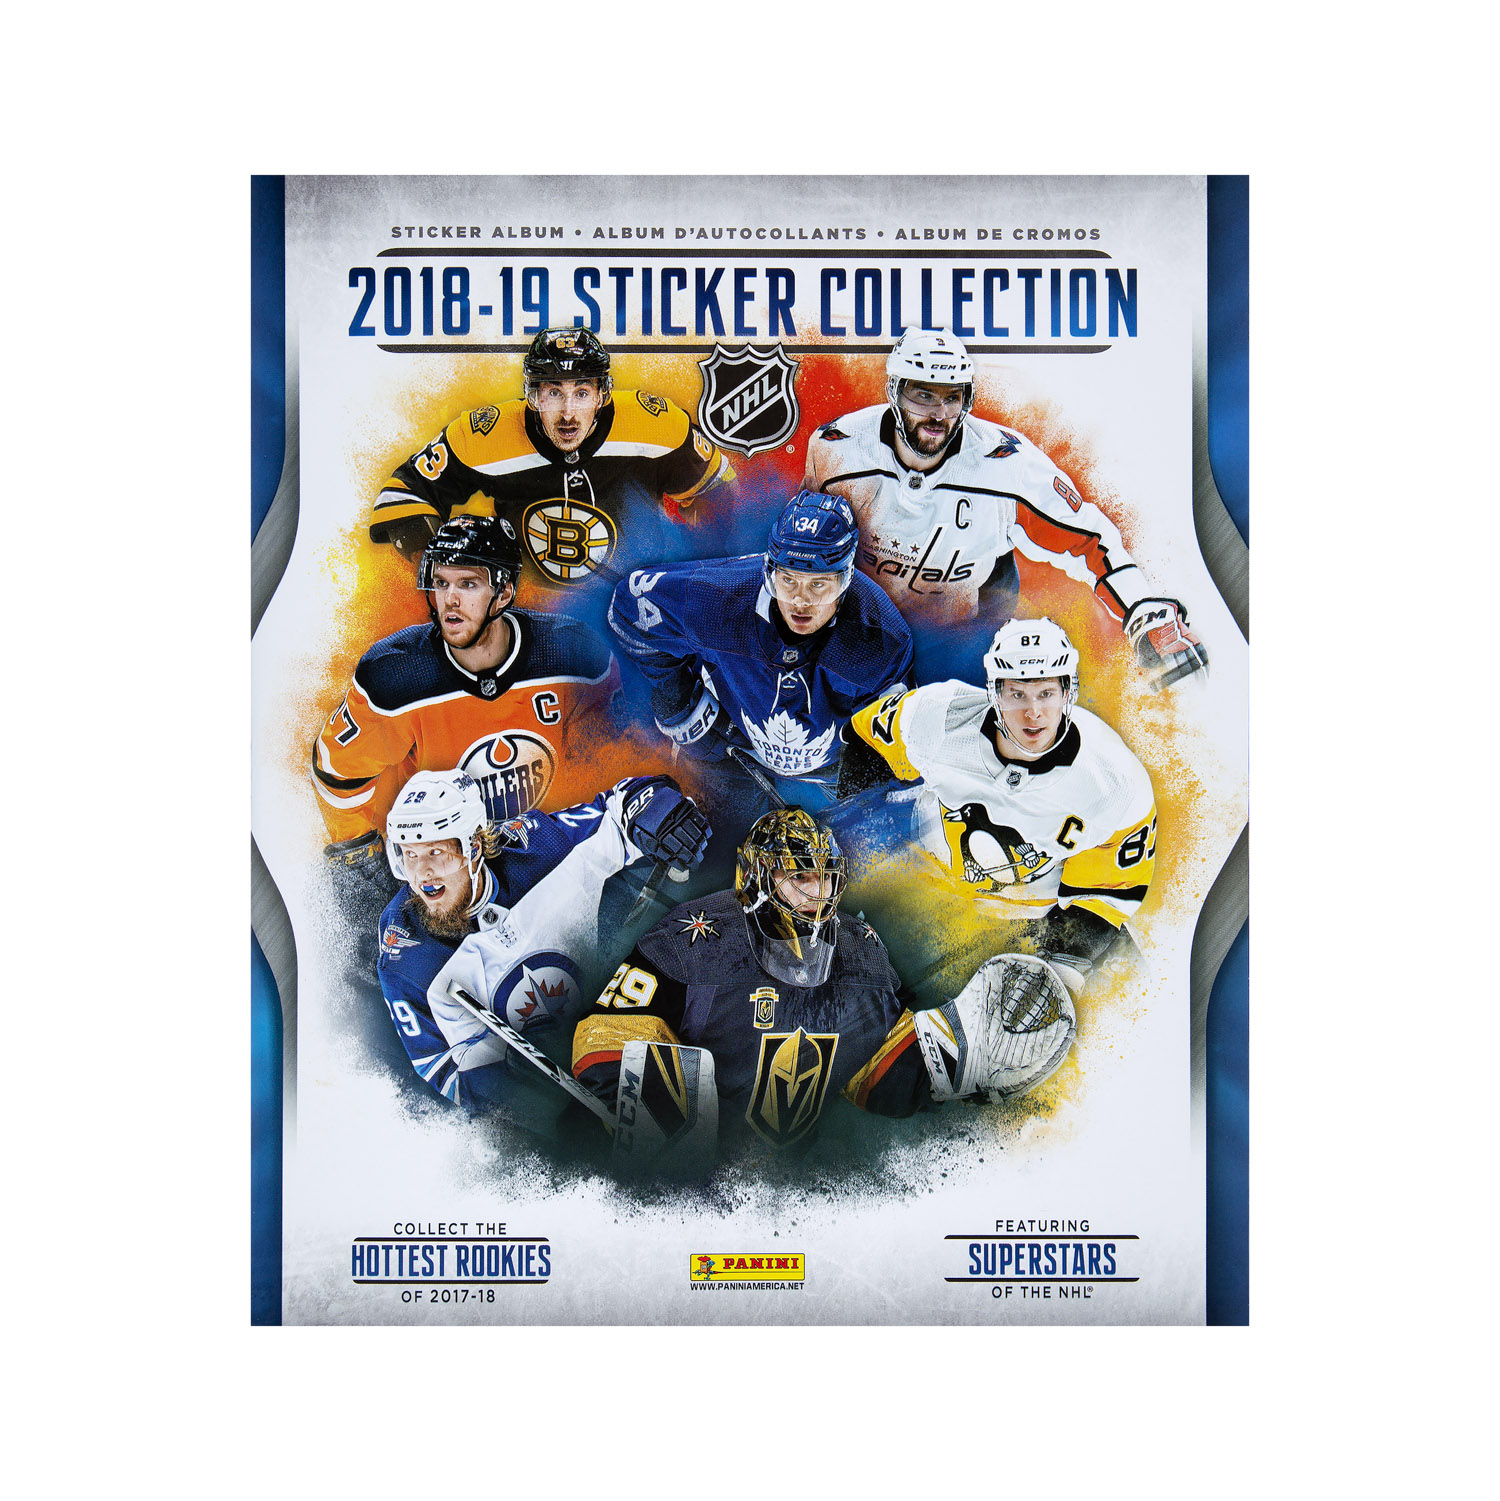 9cdf0235ce1 2018-19 NHL Sticker Collection Album